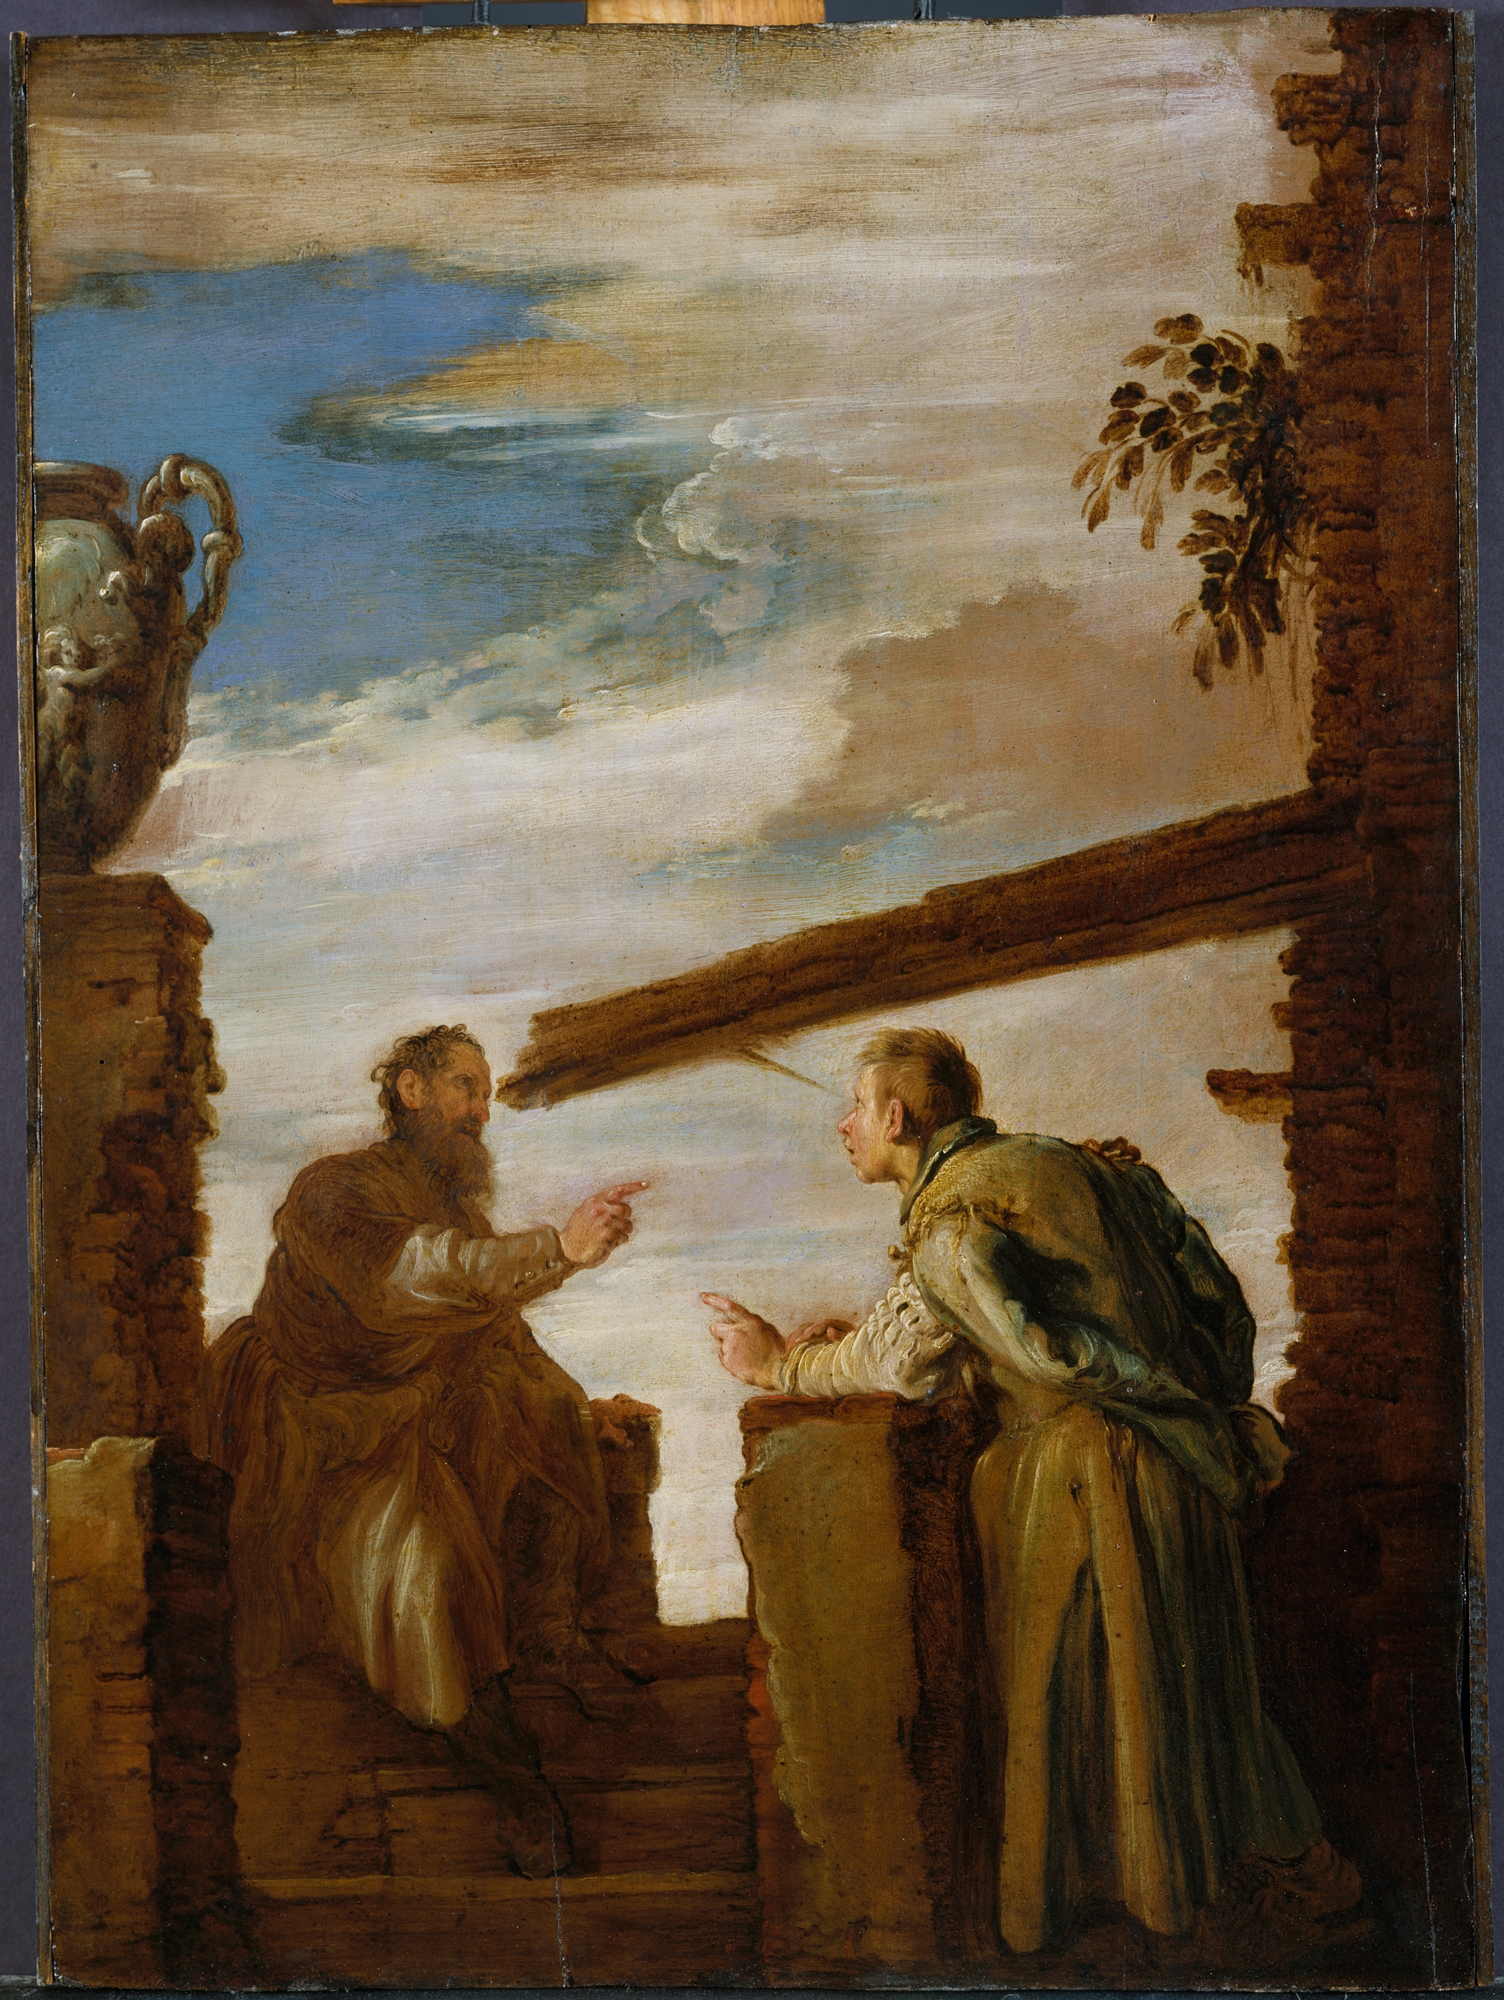 By Domenico Fetti - Metropolitan Museum of Art, online collection (accession number 1991.153), Public Domain, https://commons.wikimedia.org/w/index.php?curid=8353284